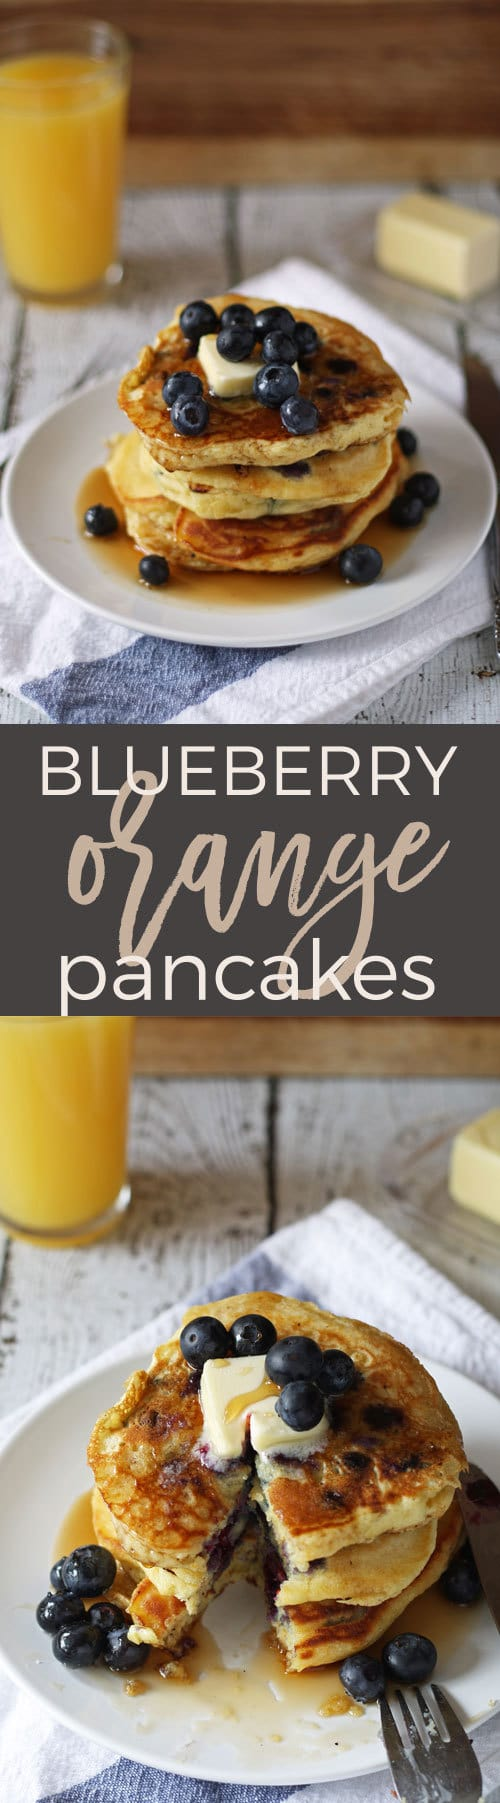 Blueberry orange pancakes - loaded with fruit and flavor! Breakfast will never be the same. | honeyandbirch.com